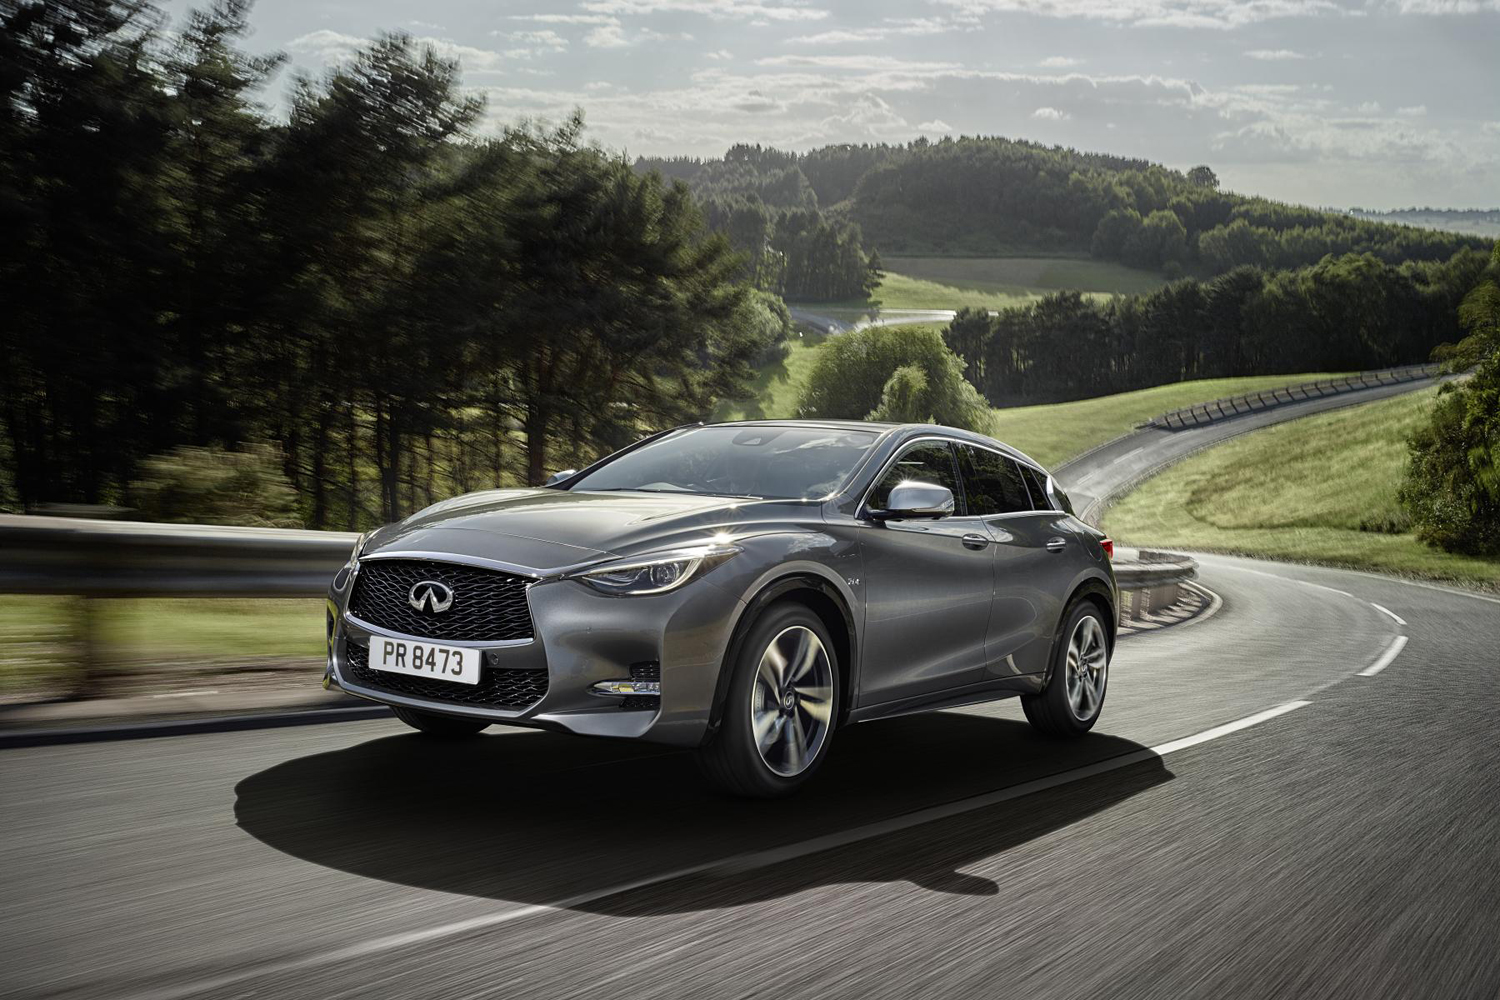 infiniti q30 sport 2 0t 7dct 4wd review. Black Bedroom Furniture Sets. Home Design Ideas